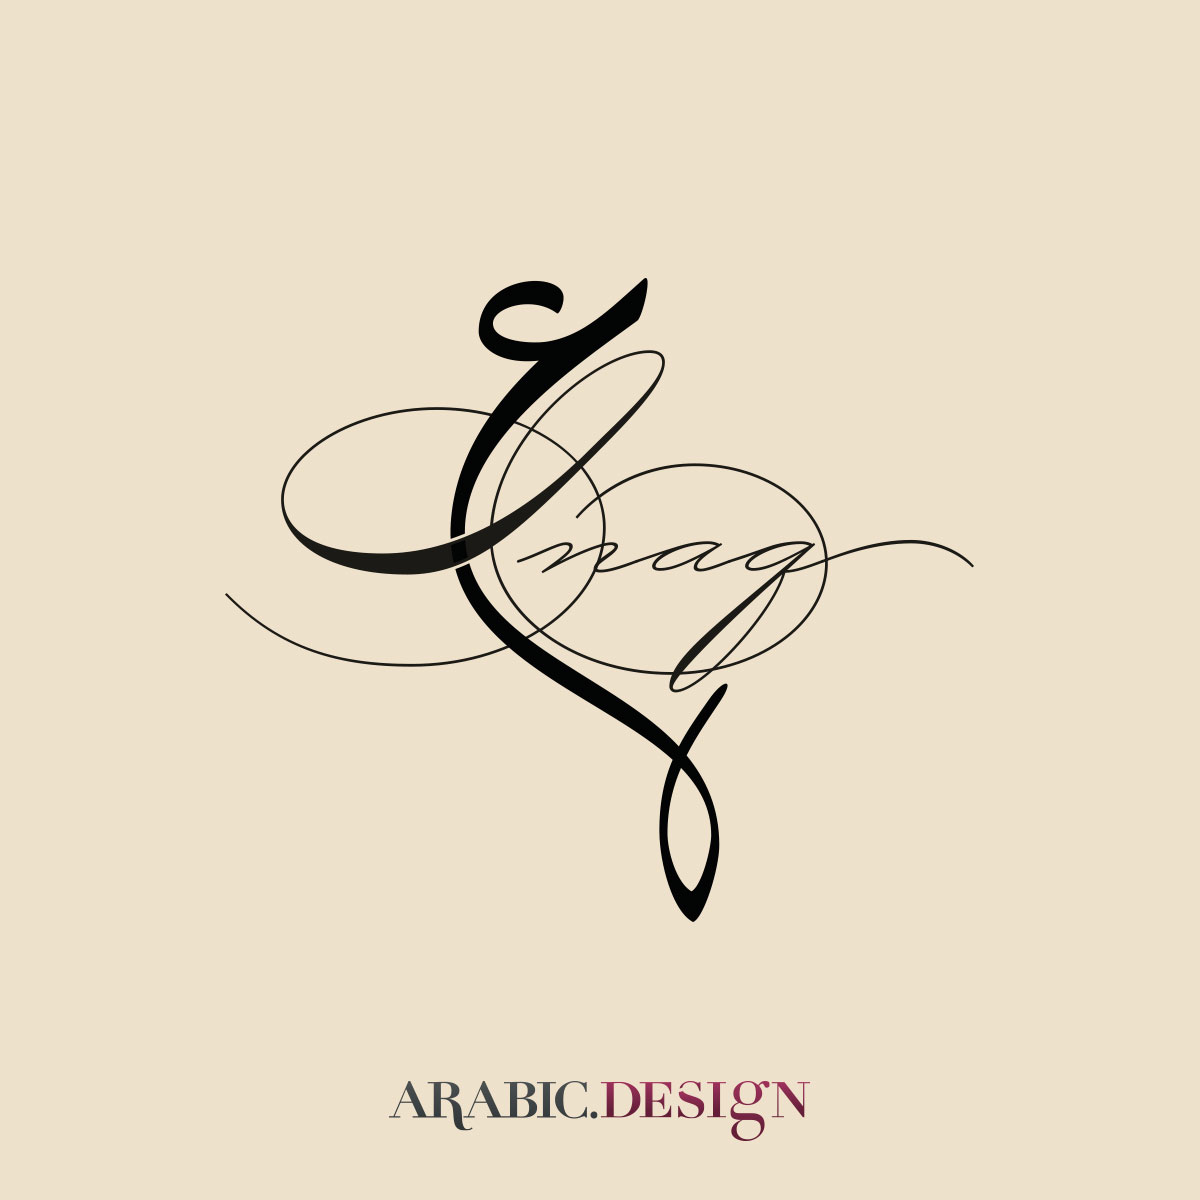 Arabic Logo Design Things You Need To Know Arabic Design